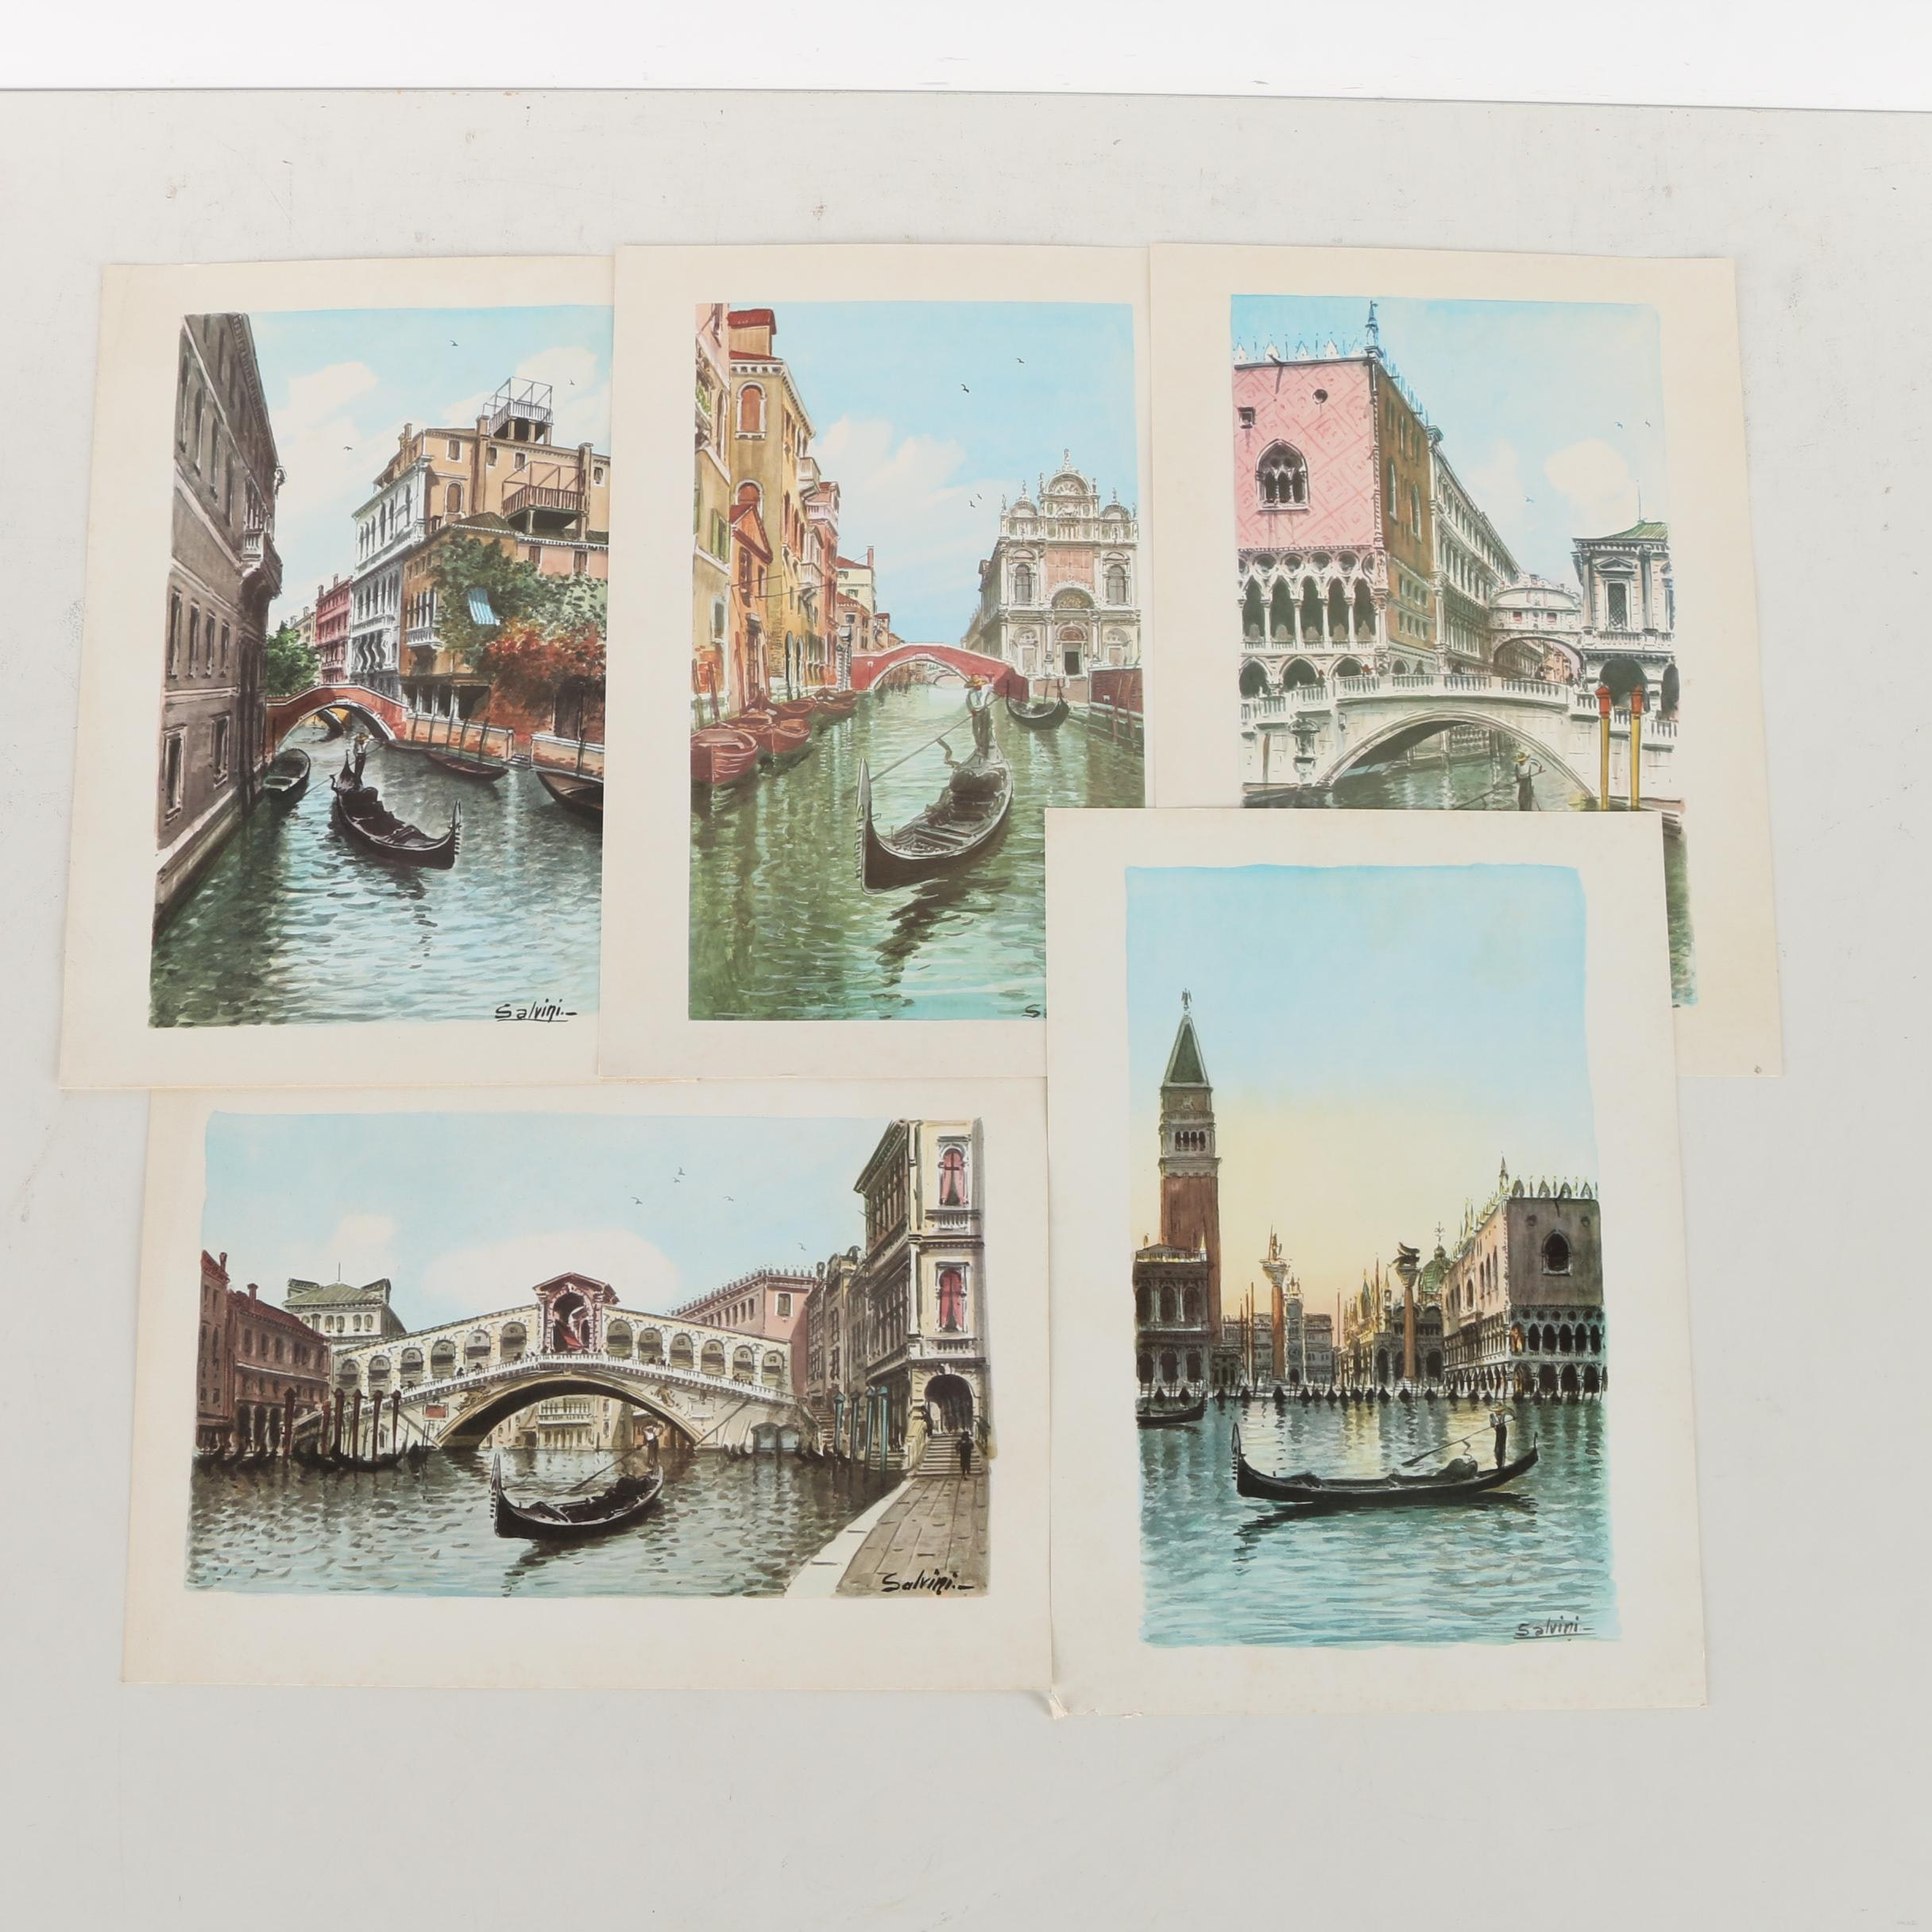 Collection of Offset Lithographs on Paper of Venetian Scenes after Salvini